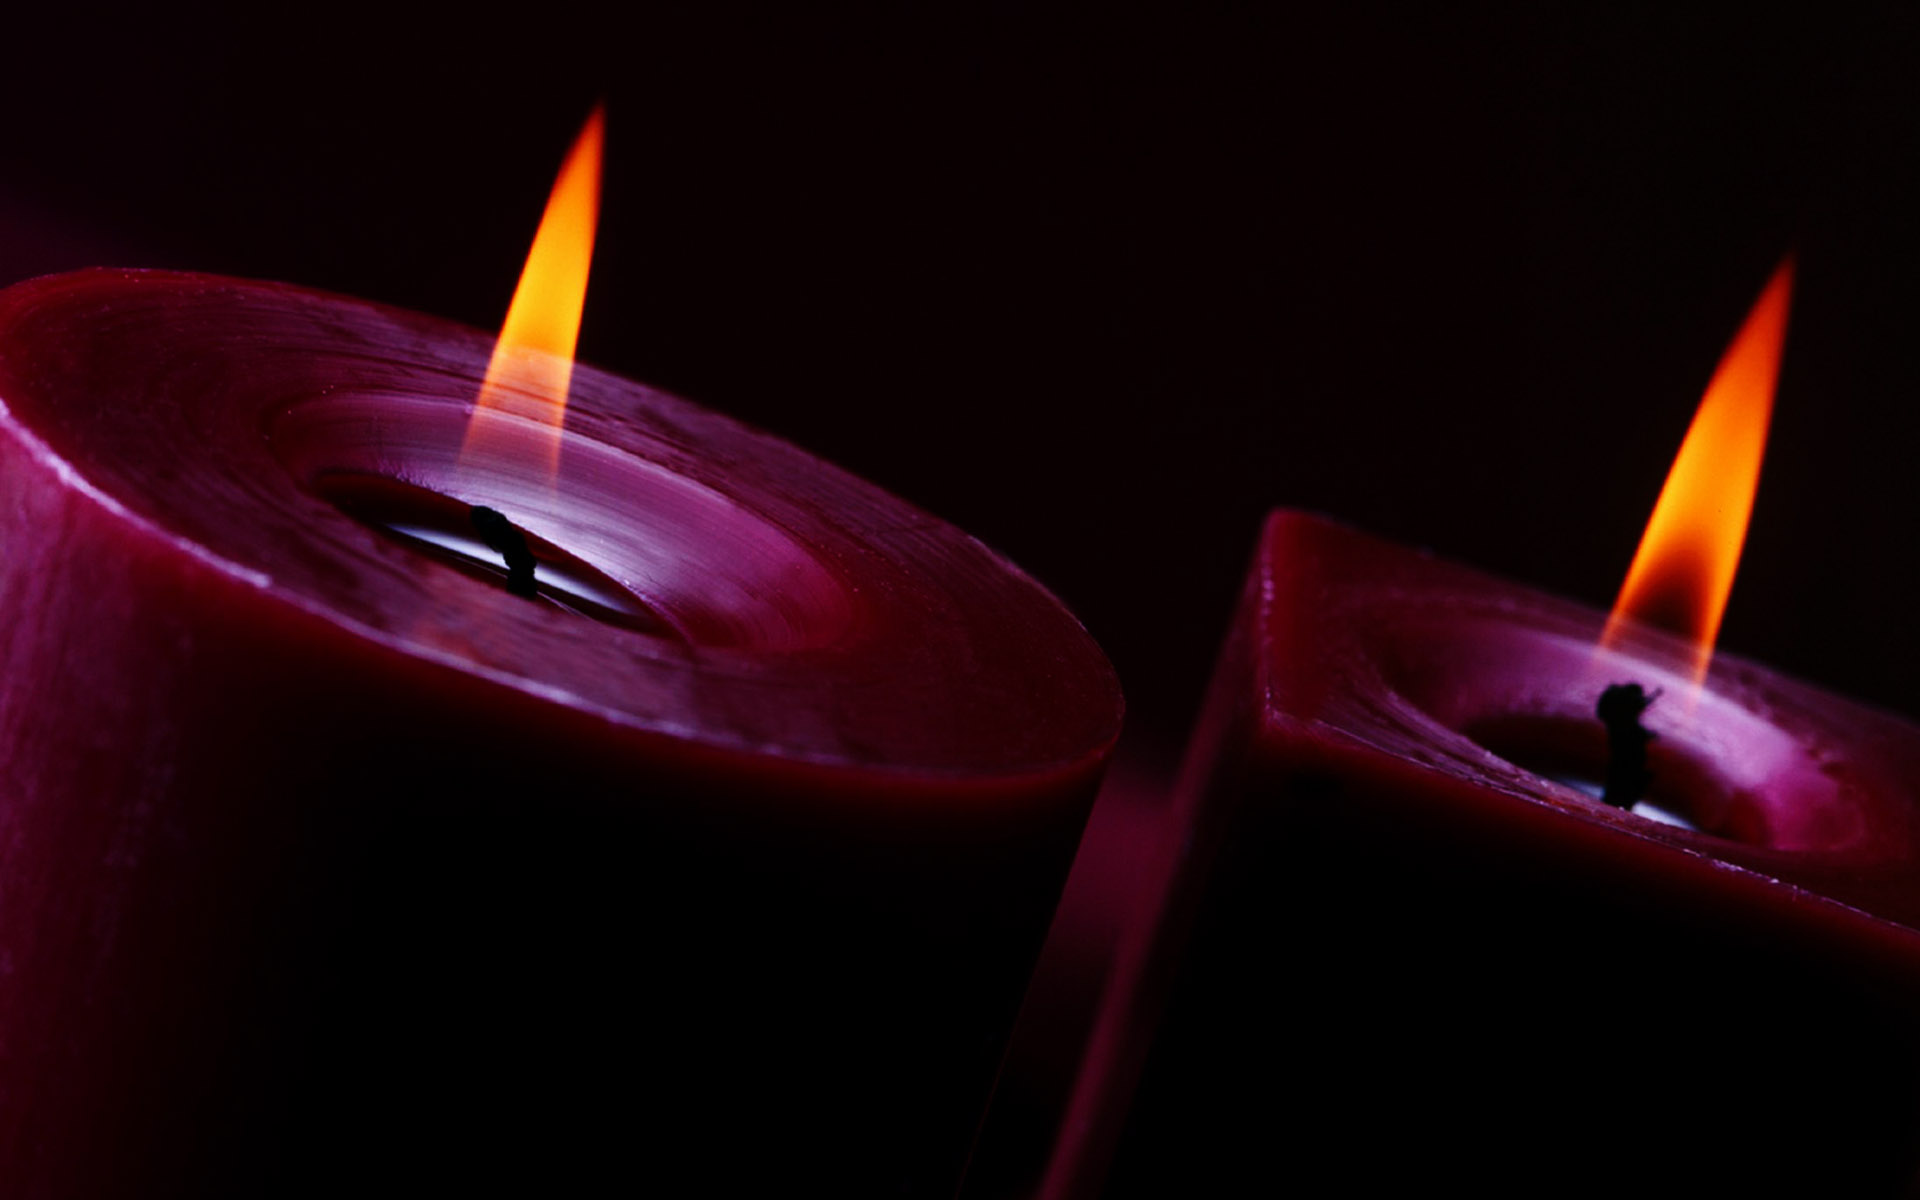 Candle wallpaper 10562